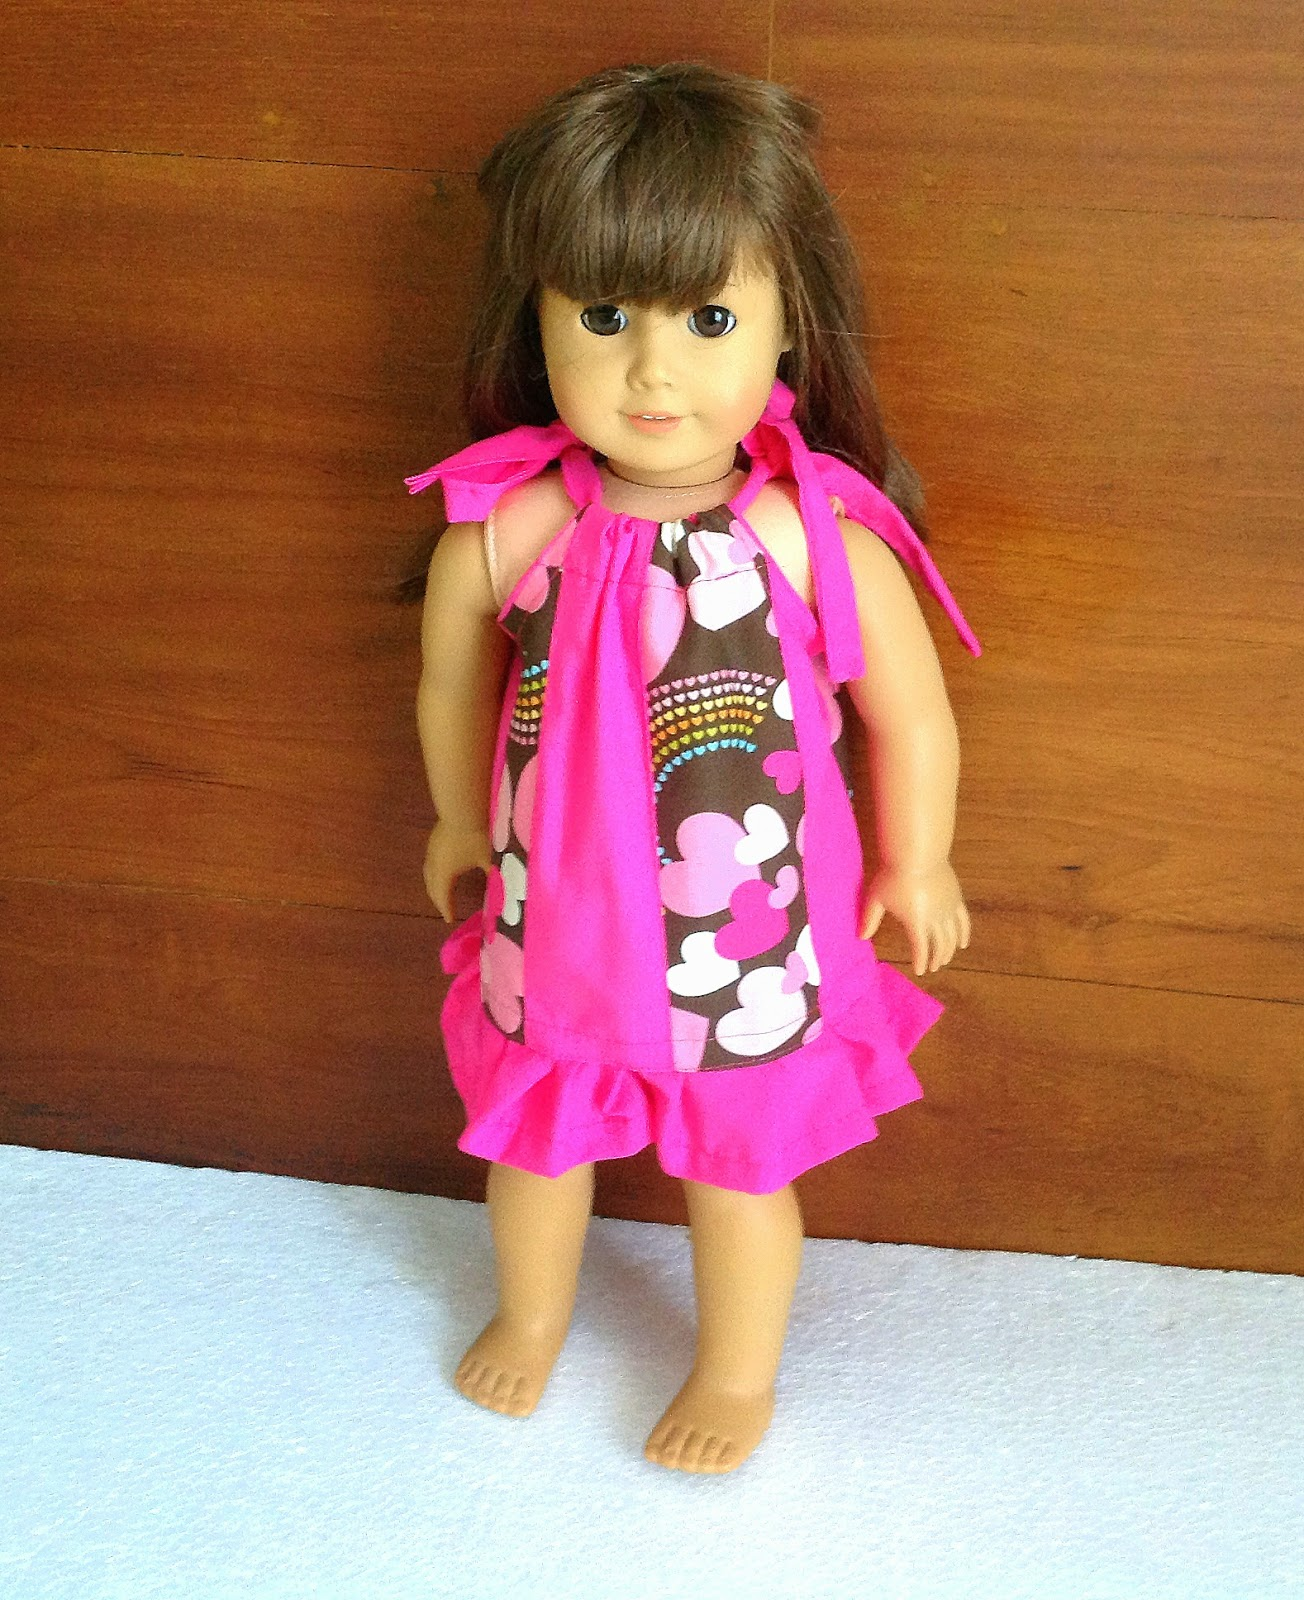 Pillowcase Dress Pattern For 18 Inch Doll: Sewing Patterns for Girls Dresses and Skirts  Pillowcase Dress    ,